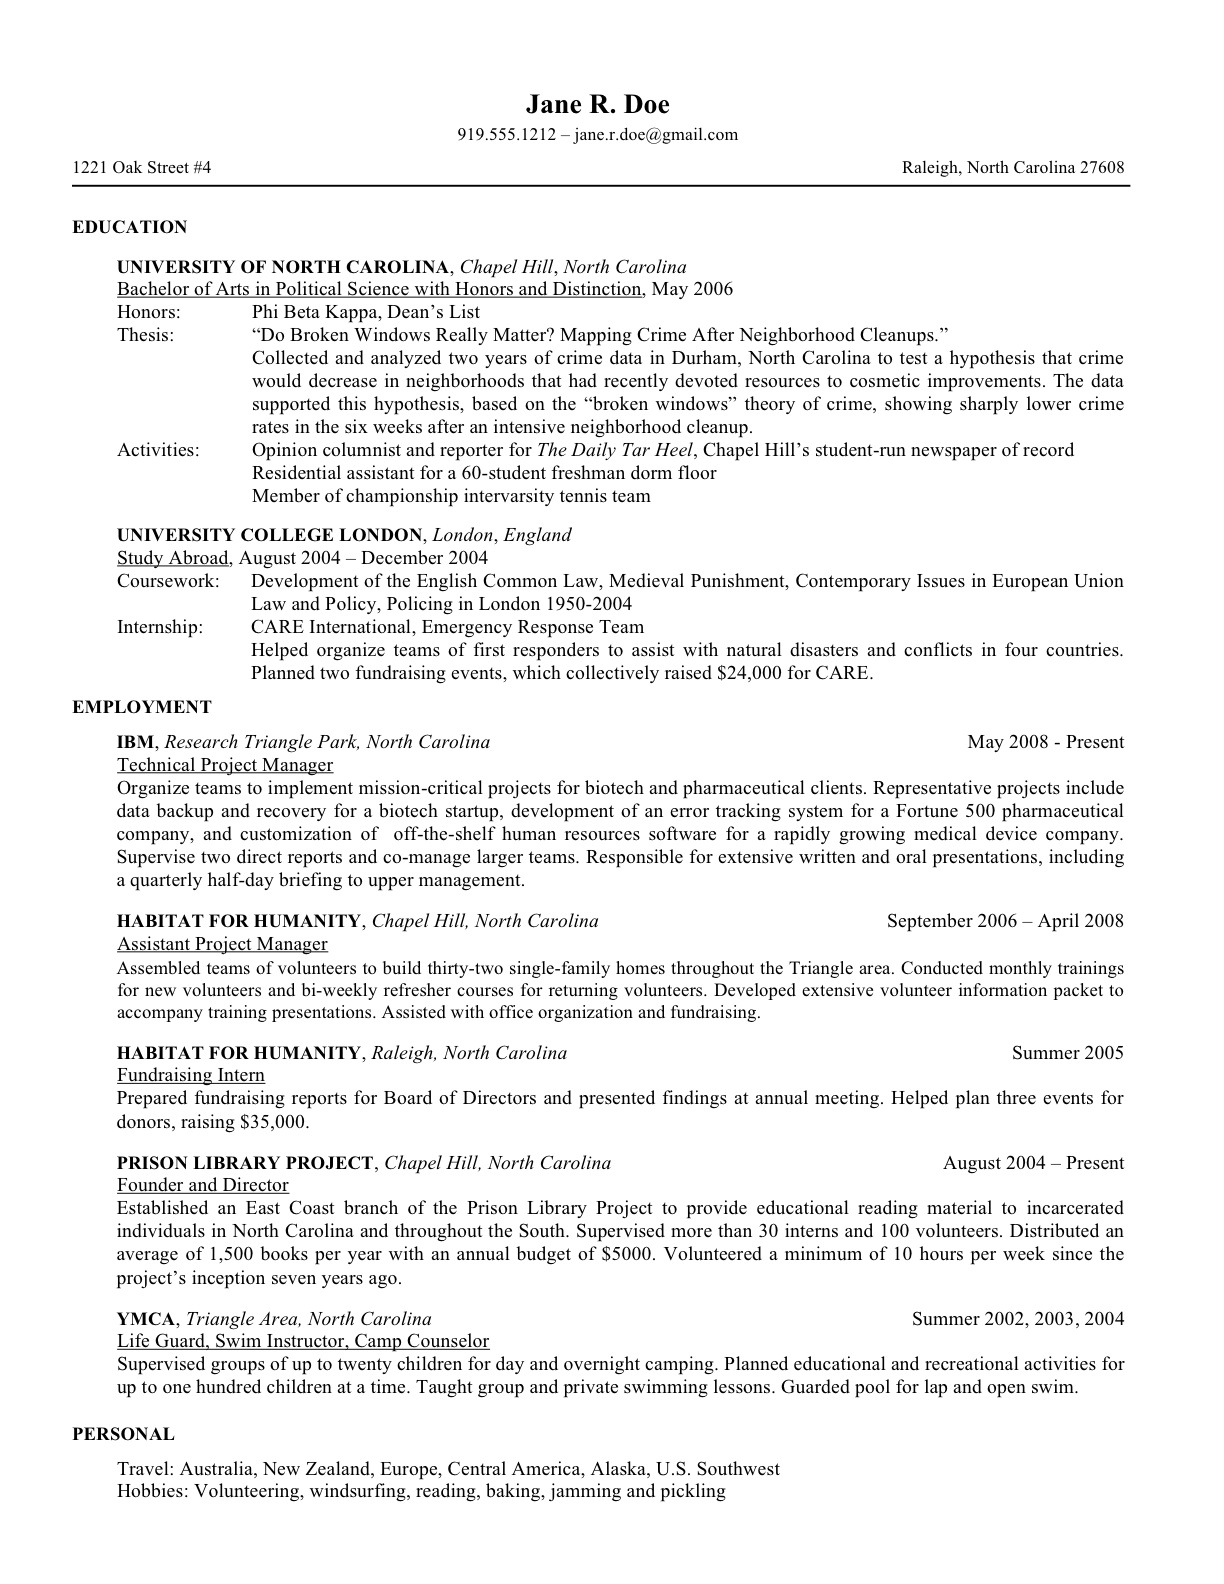 to craft law school application that gets you in sample resume teardown high for harvard Resume High School Resume For Harvard